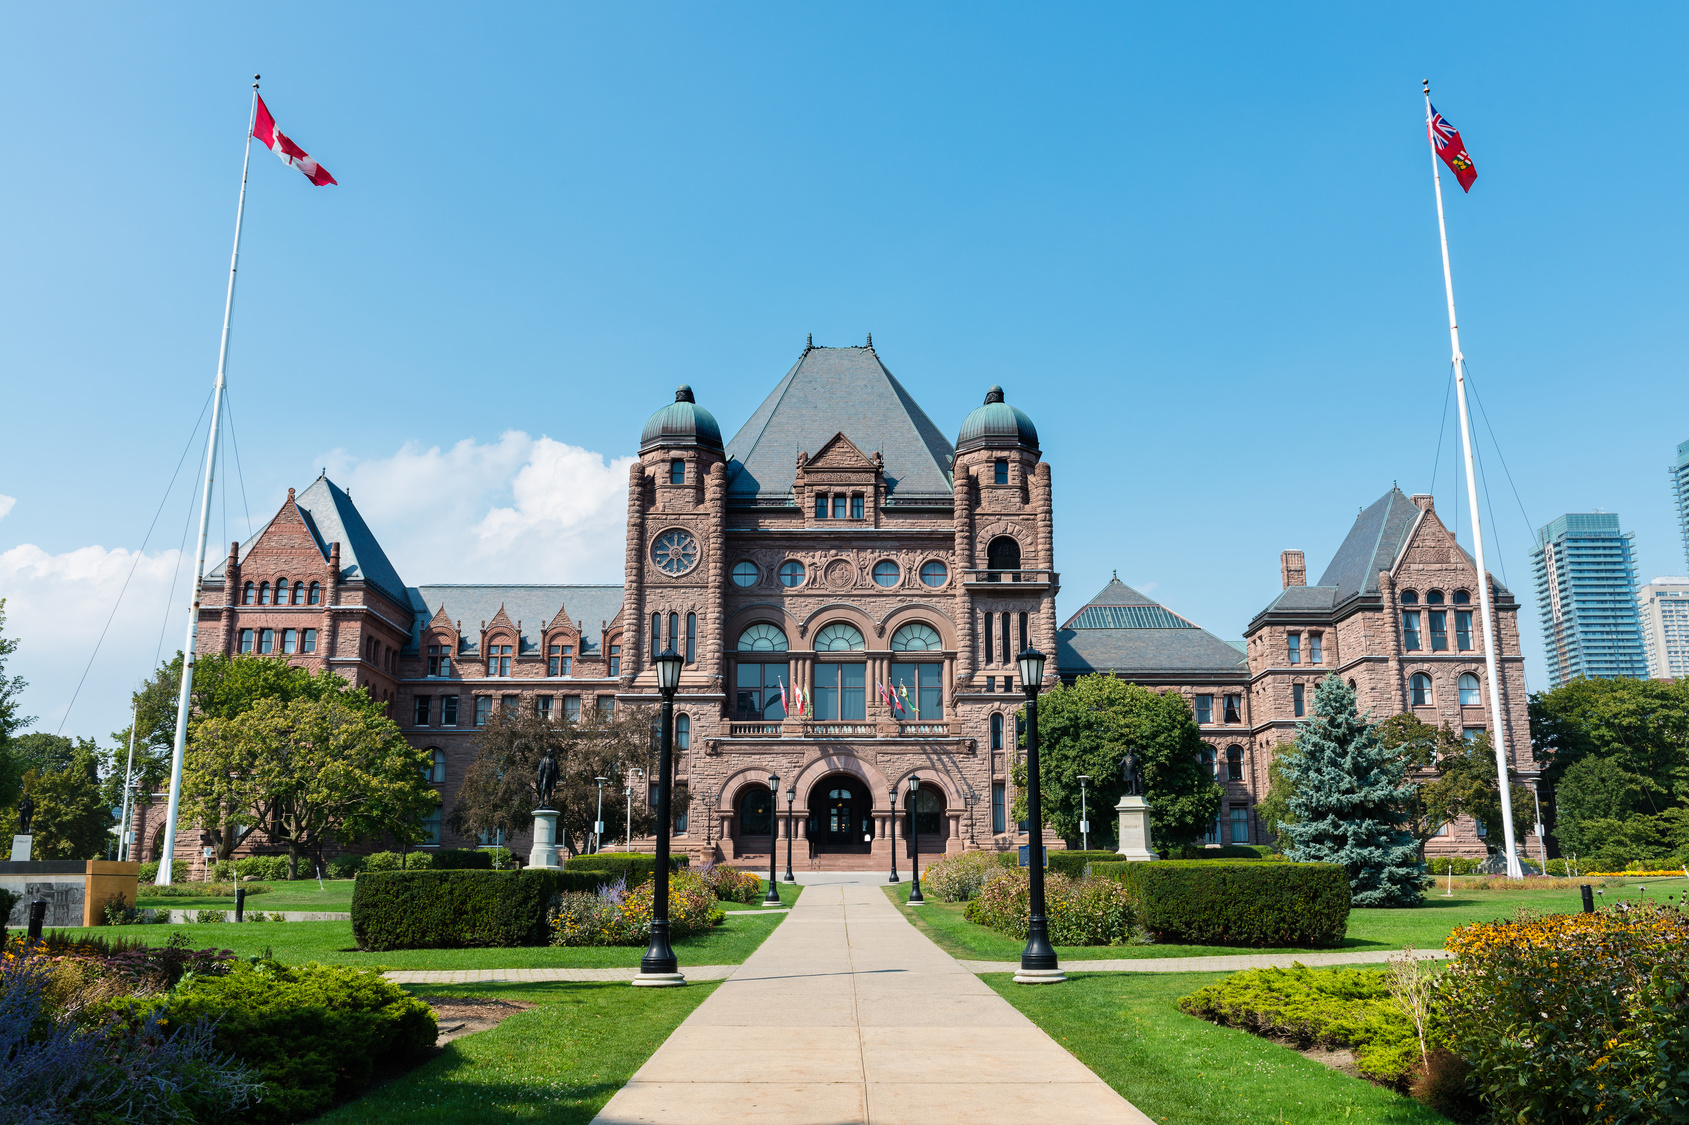 Ontario Government Releases Plan Reform Oeb And